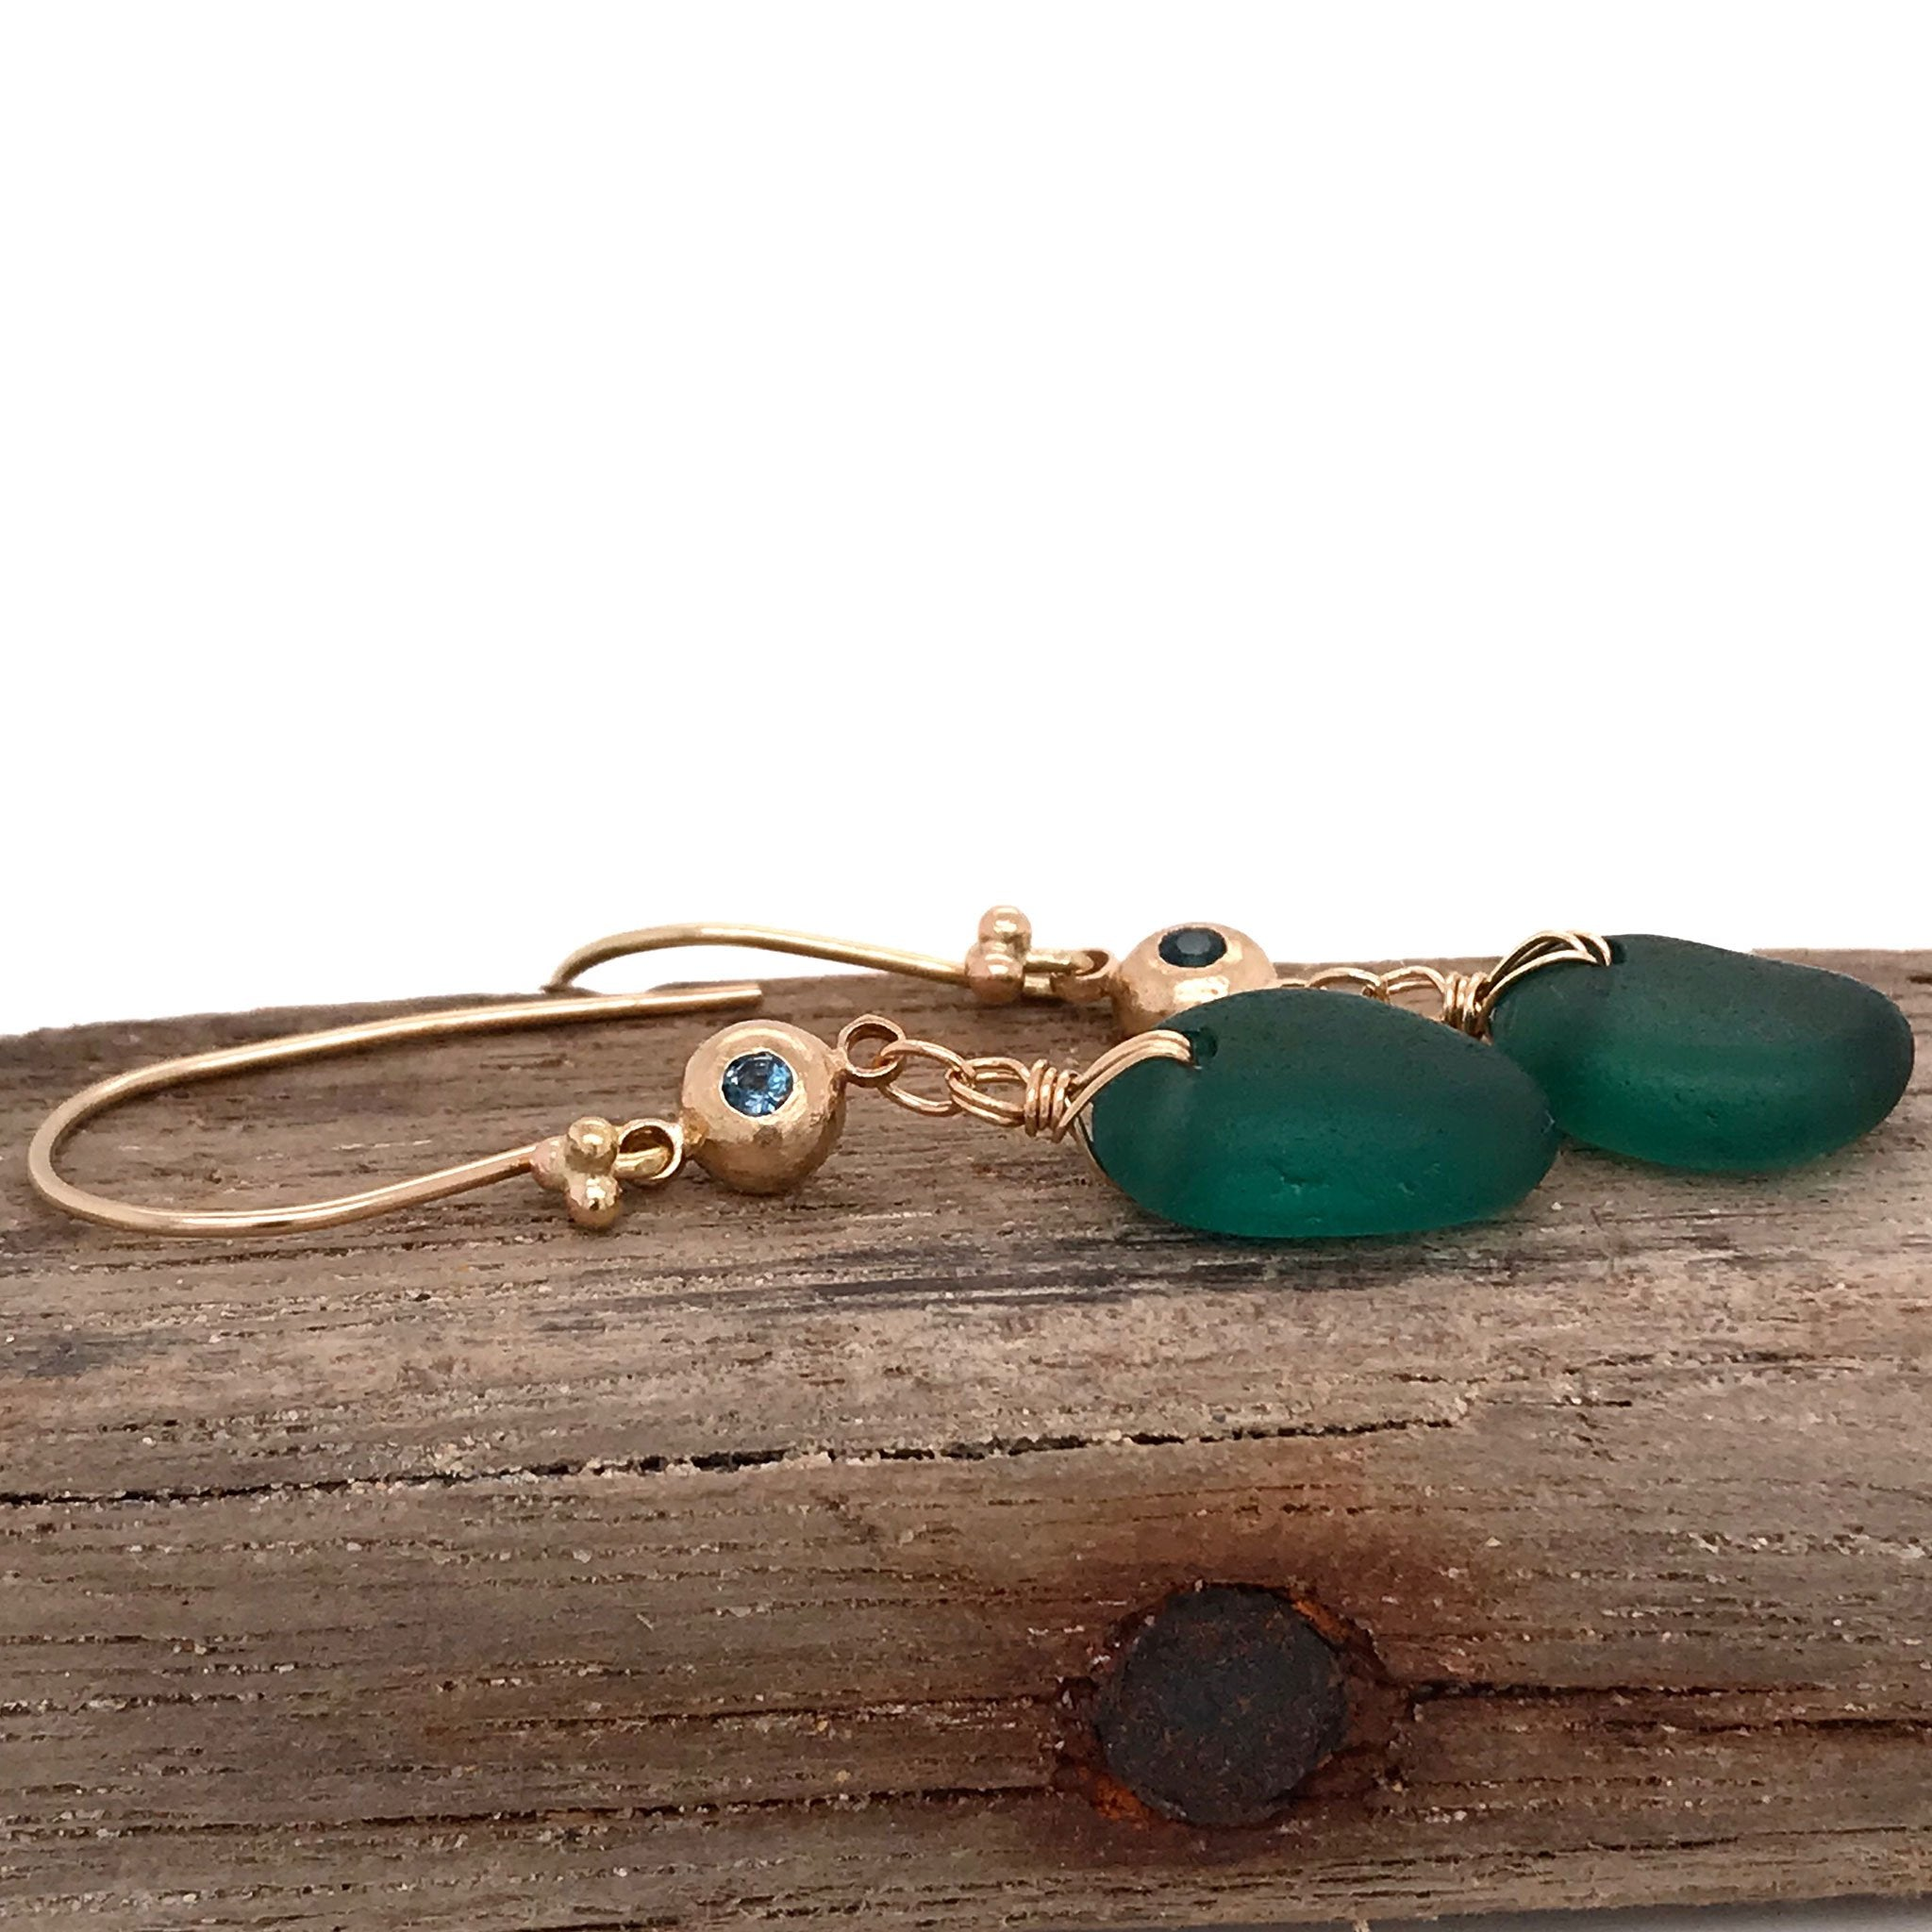 teal green earrings 14k gold pebbles set with tourmaline stones Kriket Broadhurst jewellery